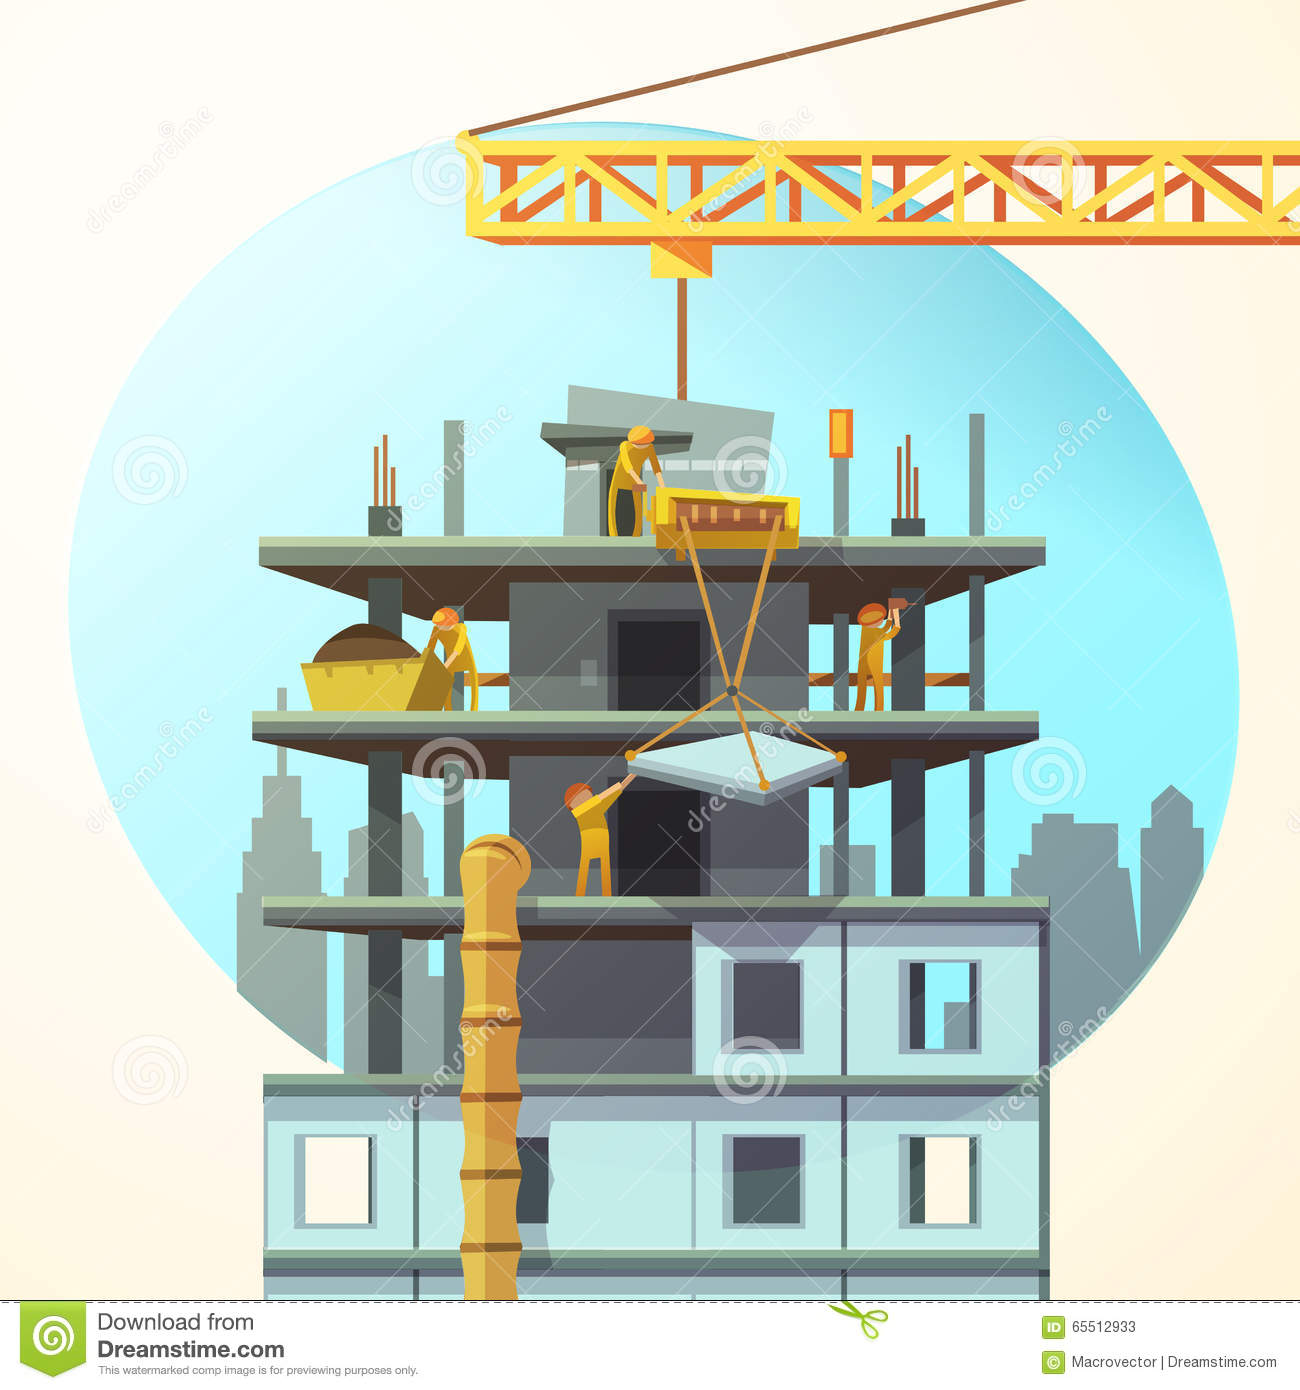 Cartoon Construction Building Images